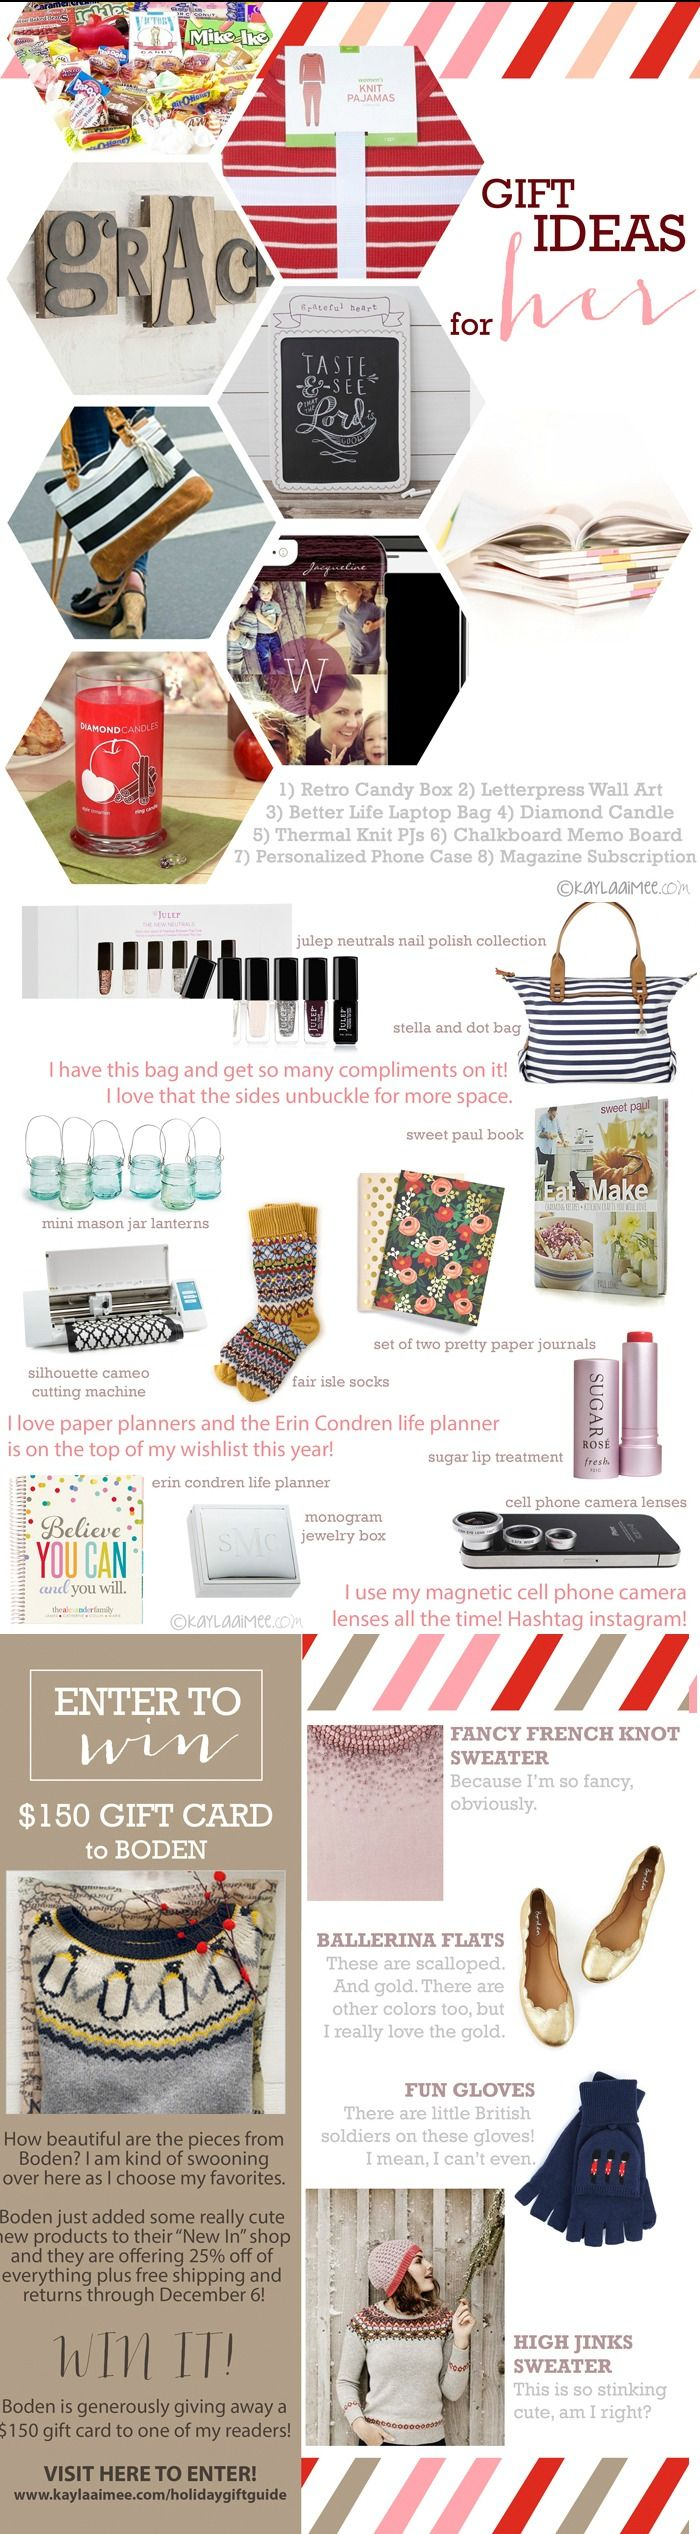 The BEST collection of creative gift ideas for women + a $150 gift card giveaway to Boden!